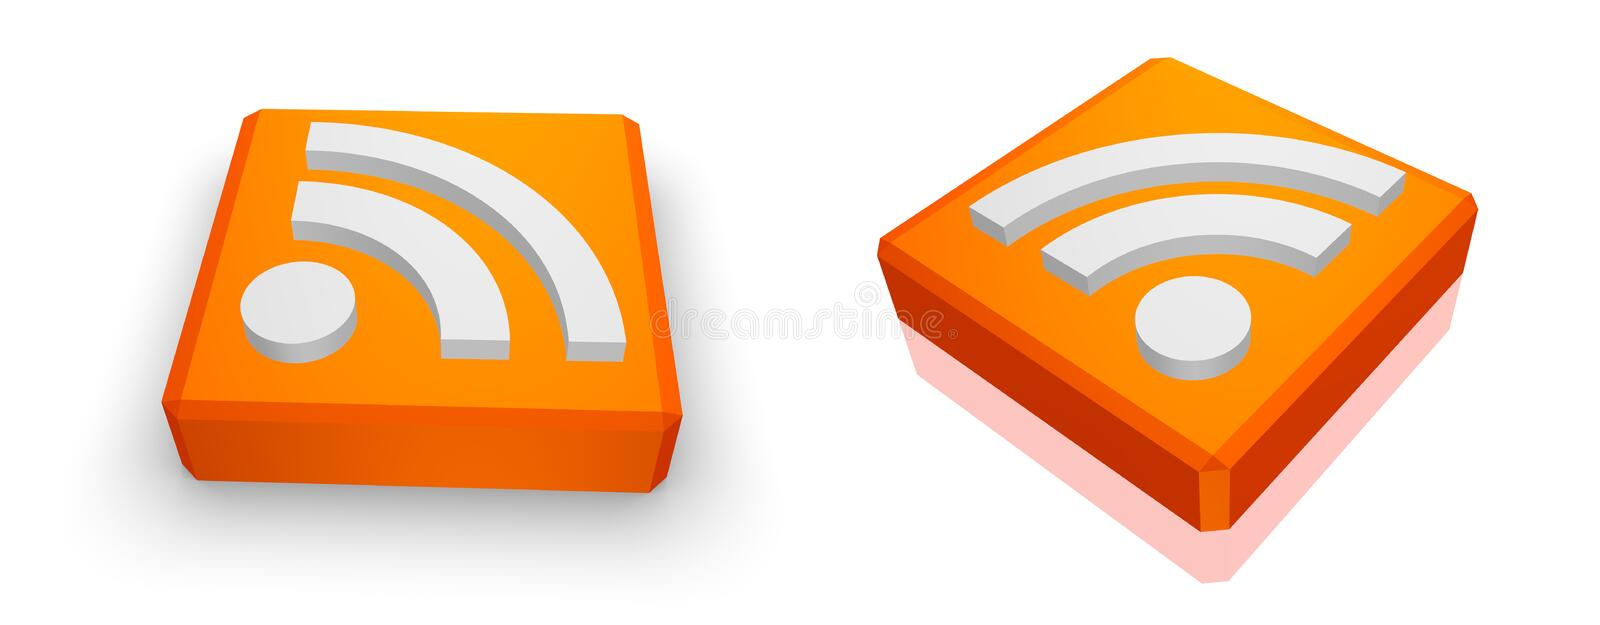 Download RSS feed icon stock illustration. Illustration of symbol - 25383437